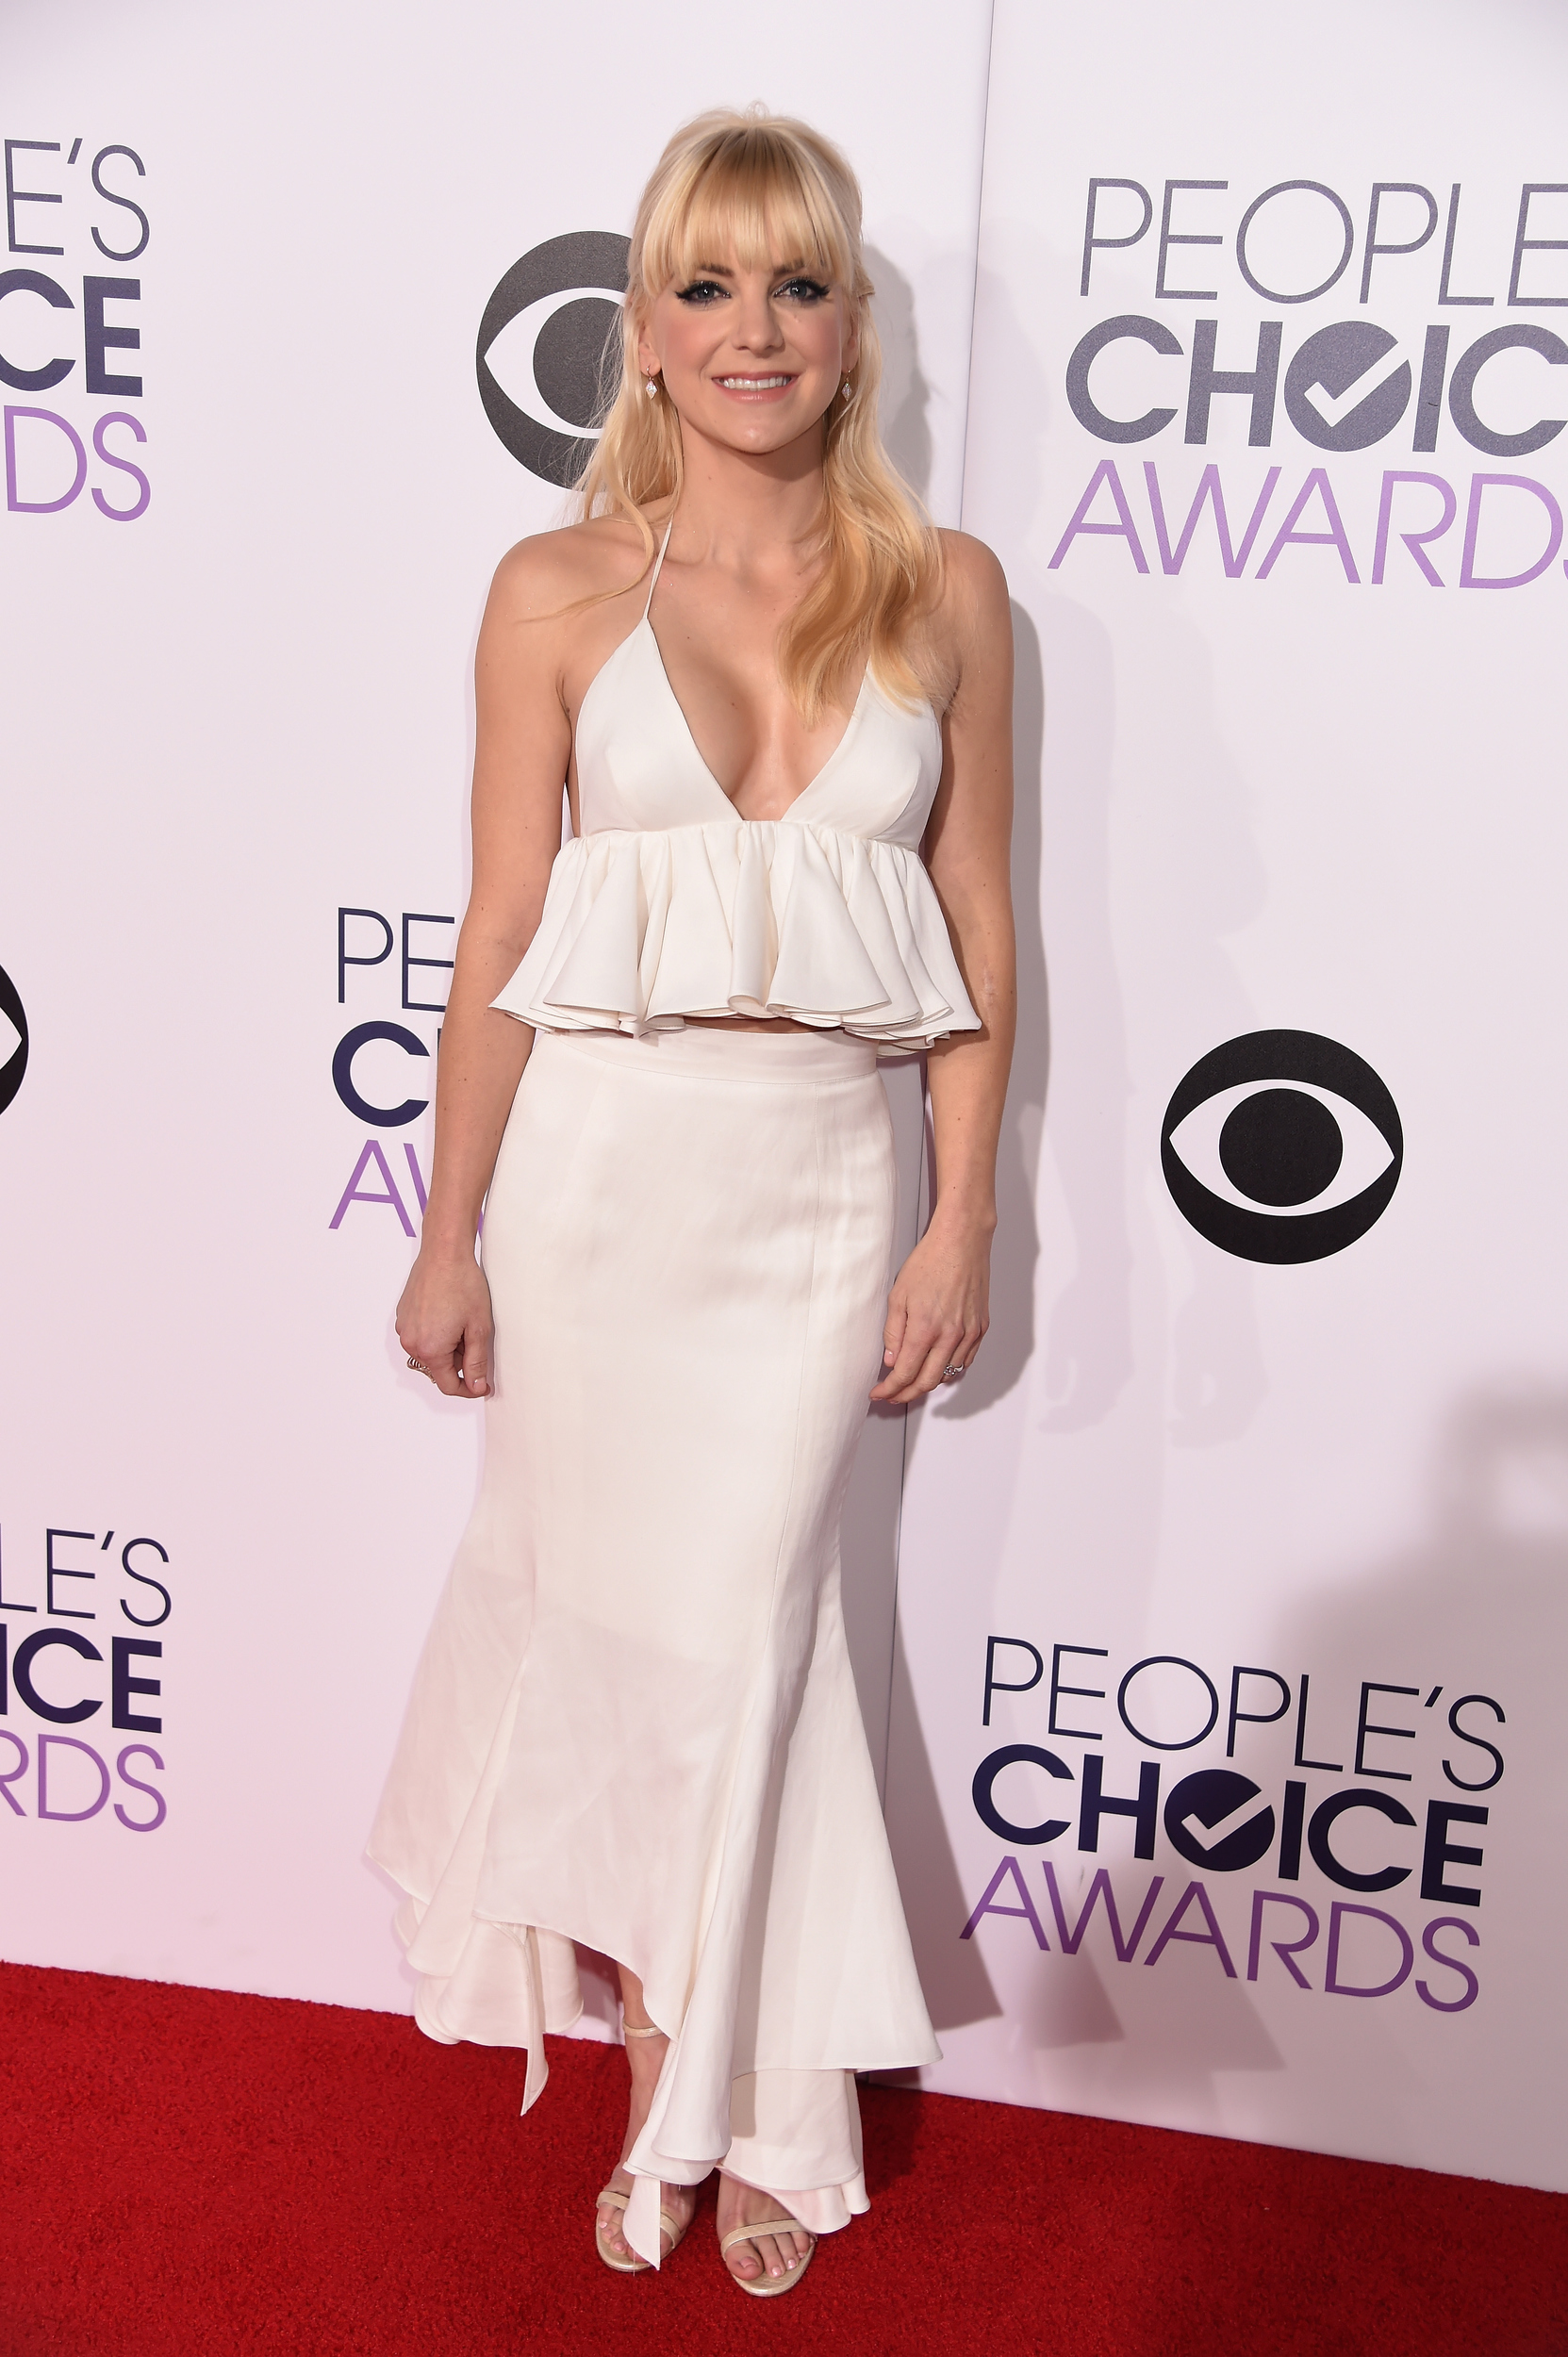 2015 People's Choice Awards red carpet - AOL Entertainment